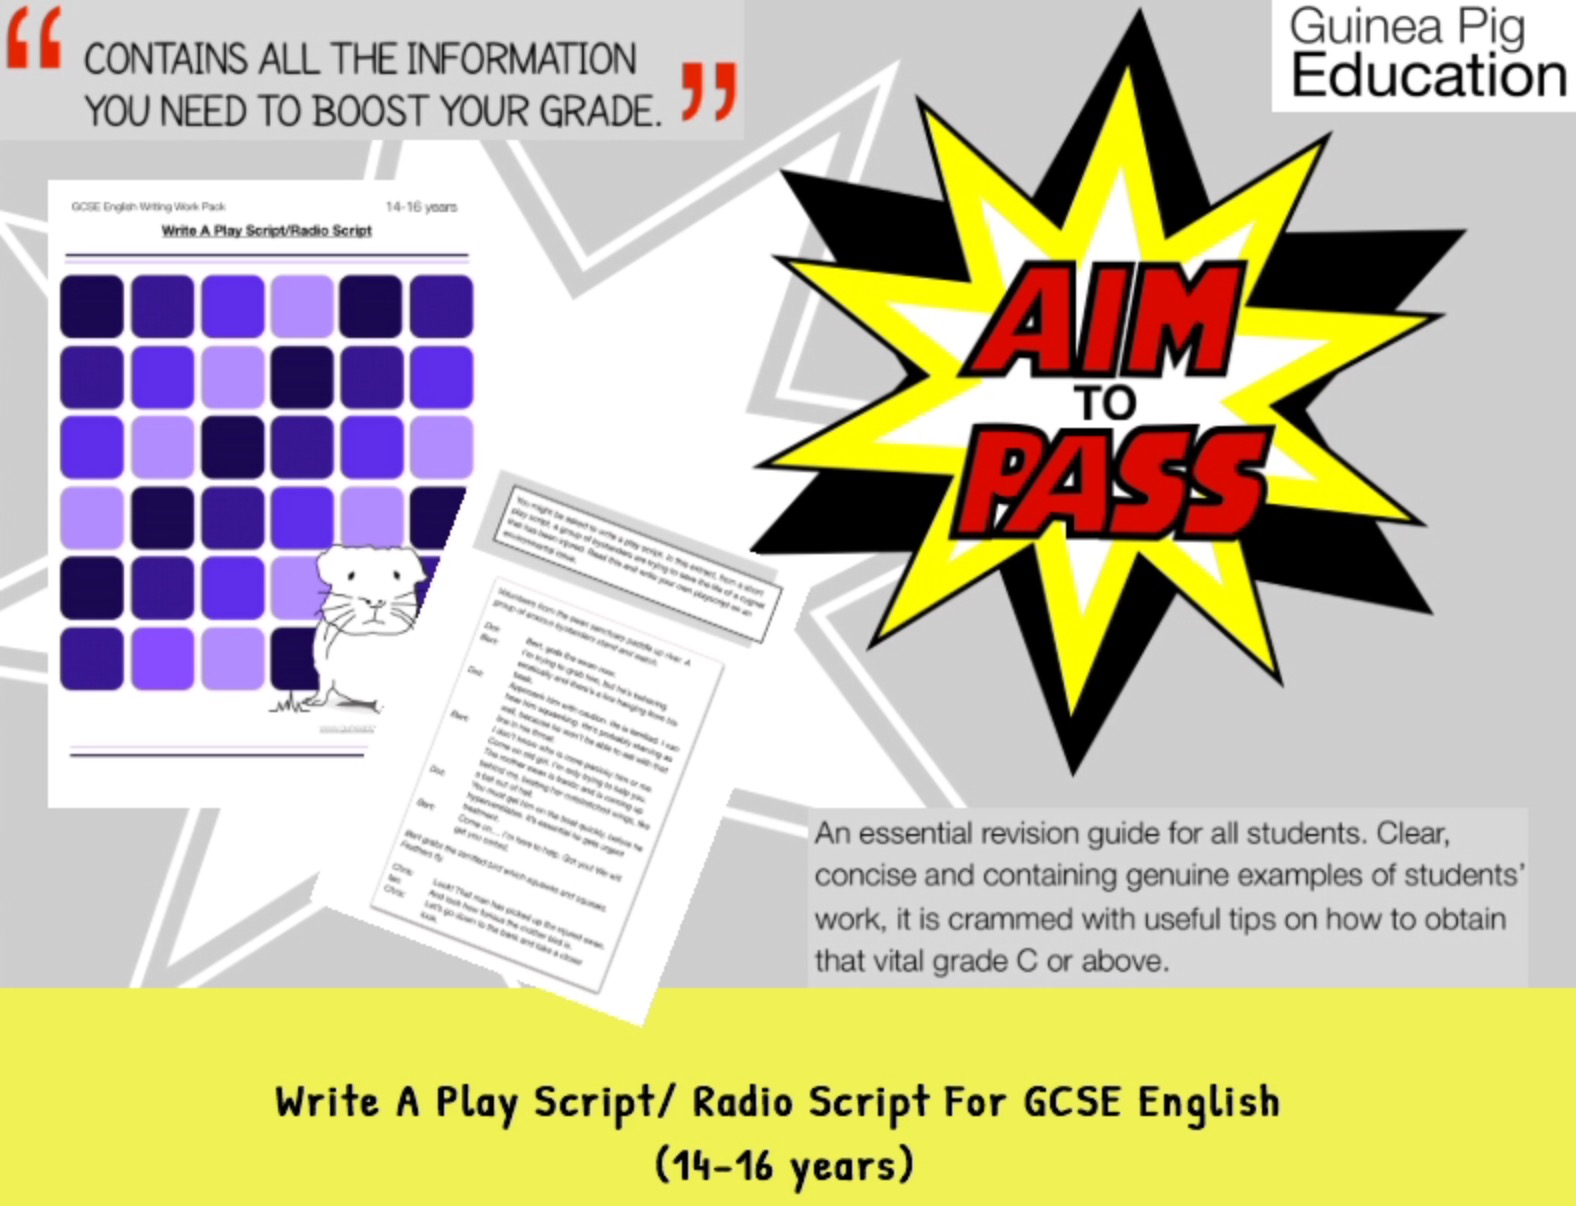 Write A Play Script/ Radio Script (Improve Your Grades At GCSE) (14-16 years)